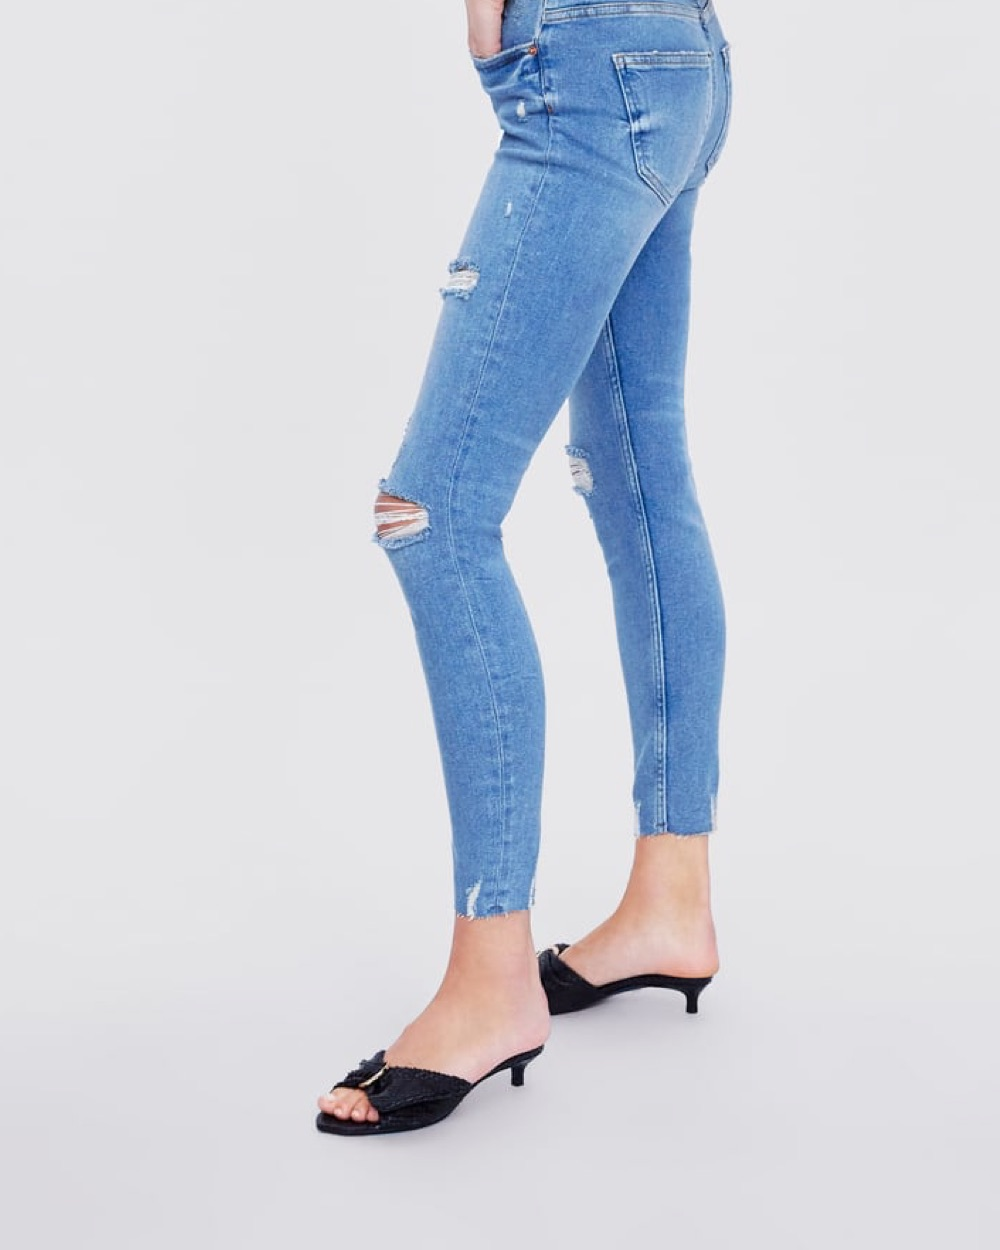 Ragged Jeans Pants